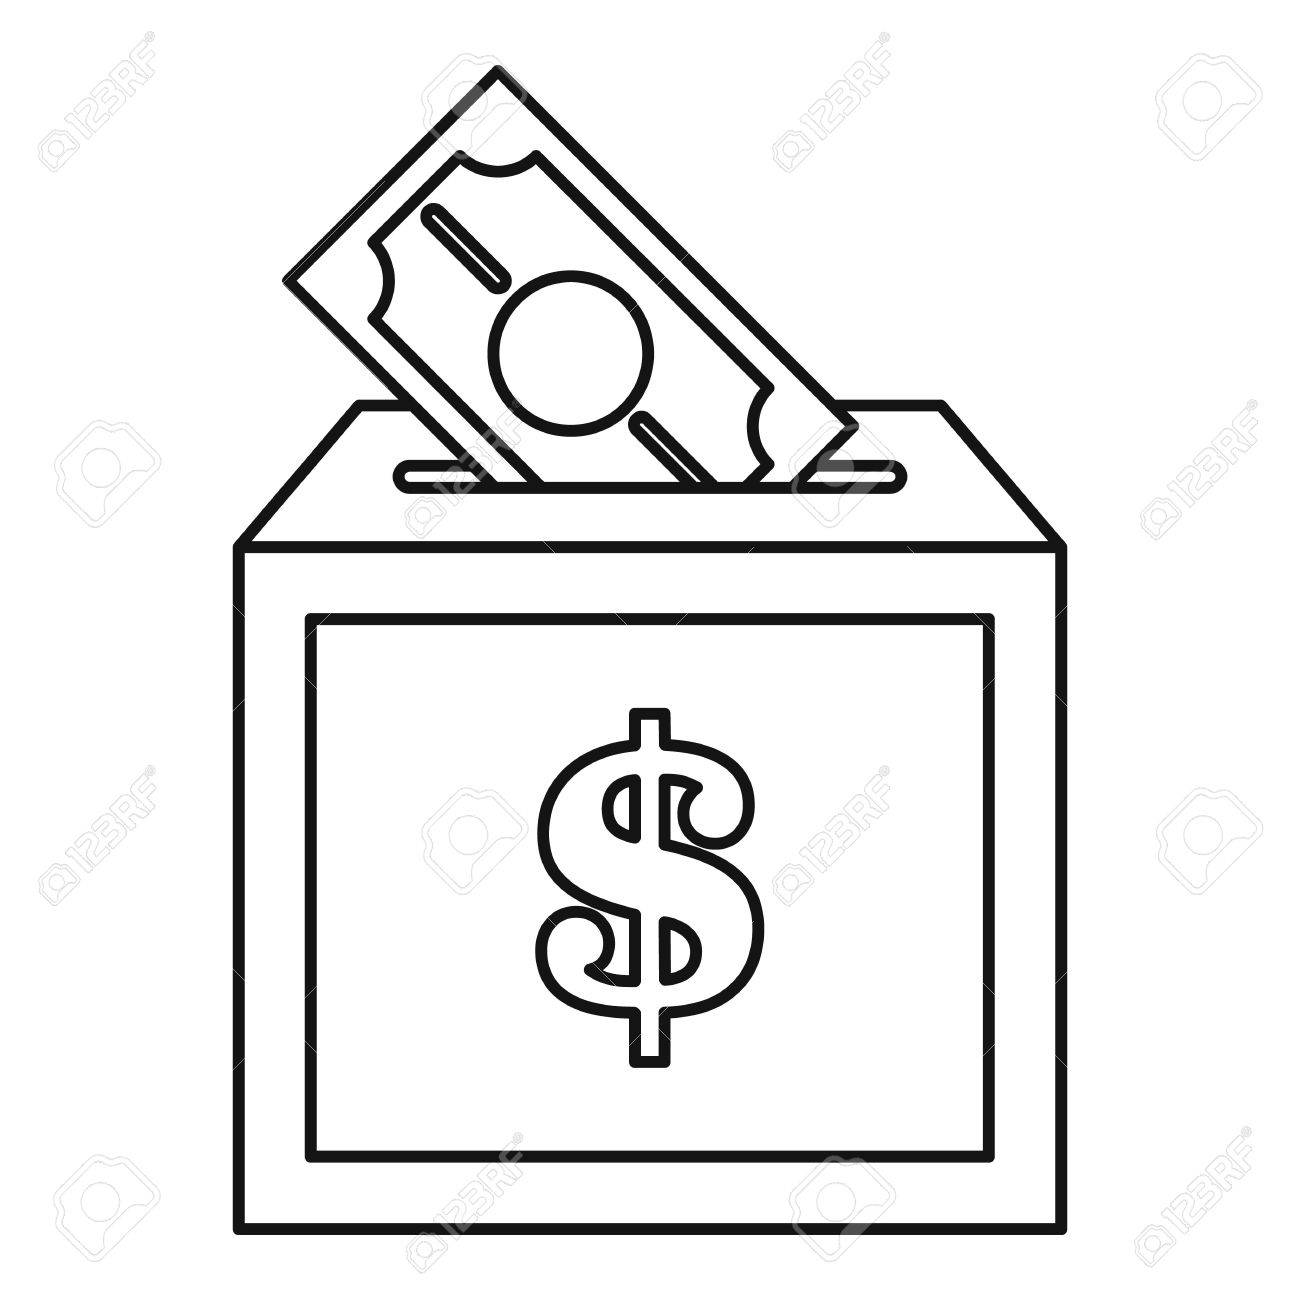 Donation box icon. Outline illustration of donation box icon...